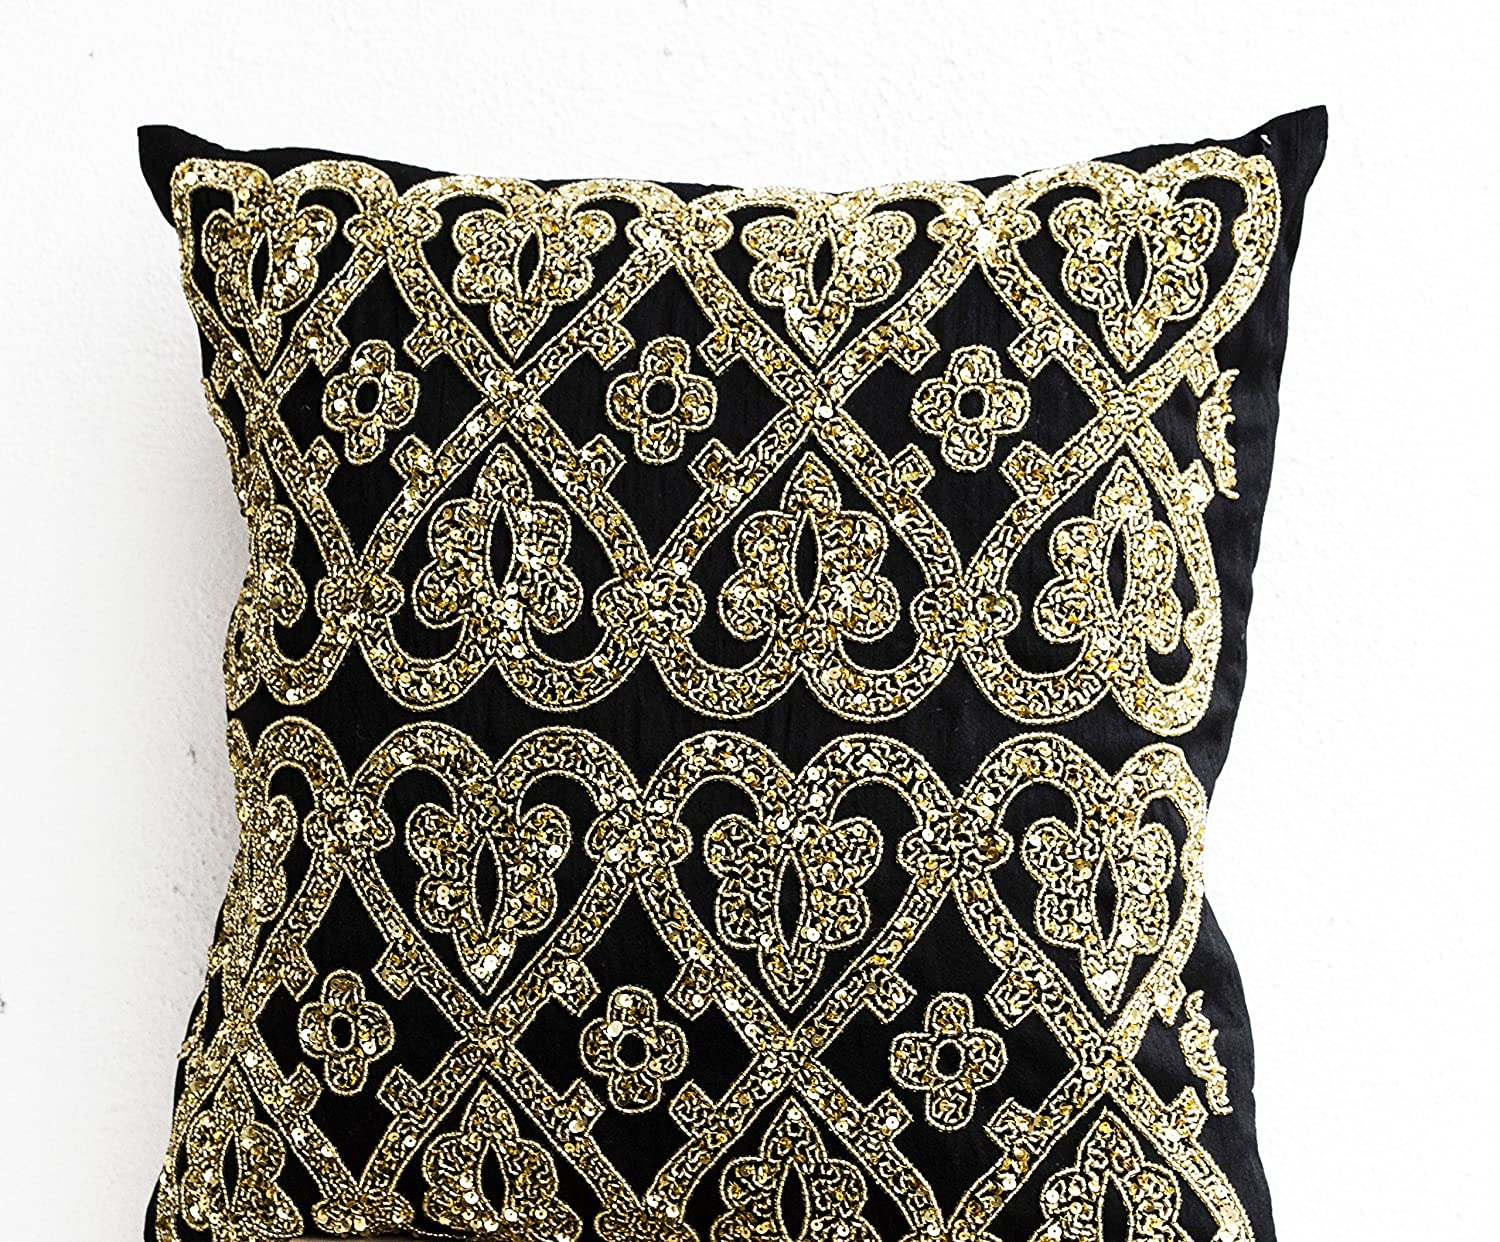 online shop gift il pillow pillows products boarder fullxfull throw cushion gold hasq personalized black with handmade for decorative sequin